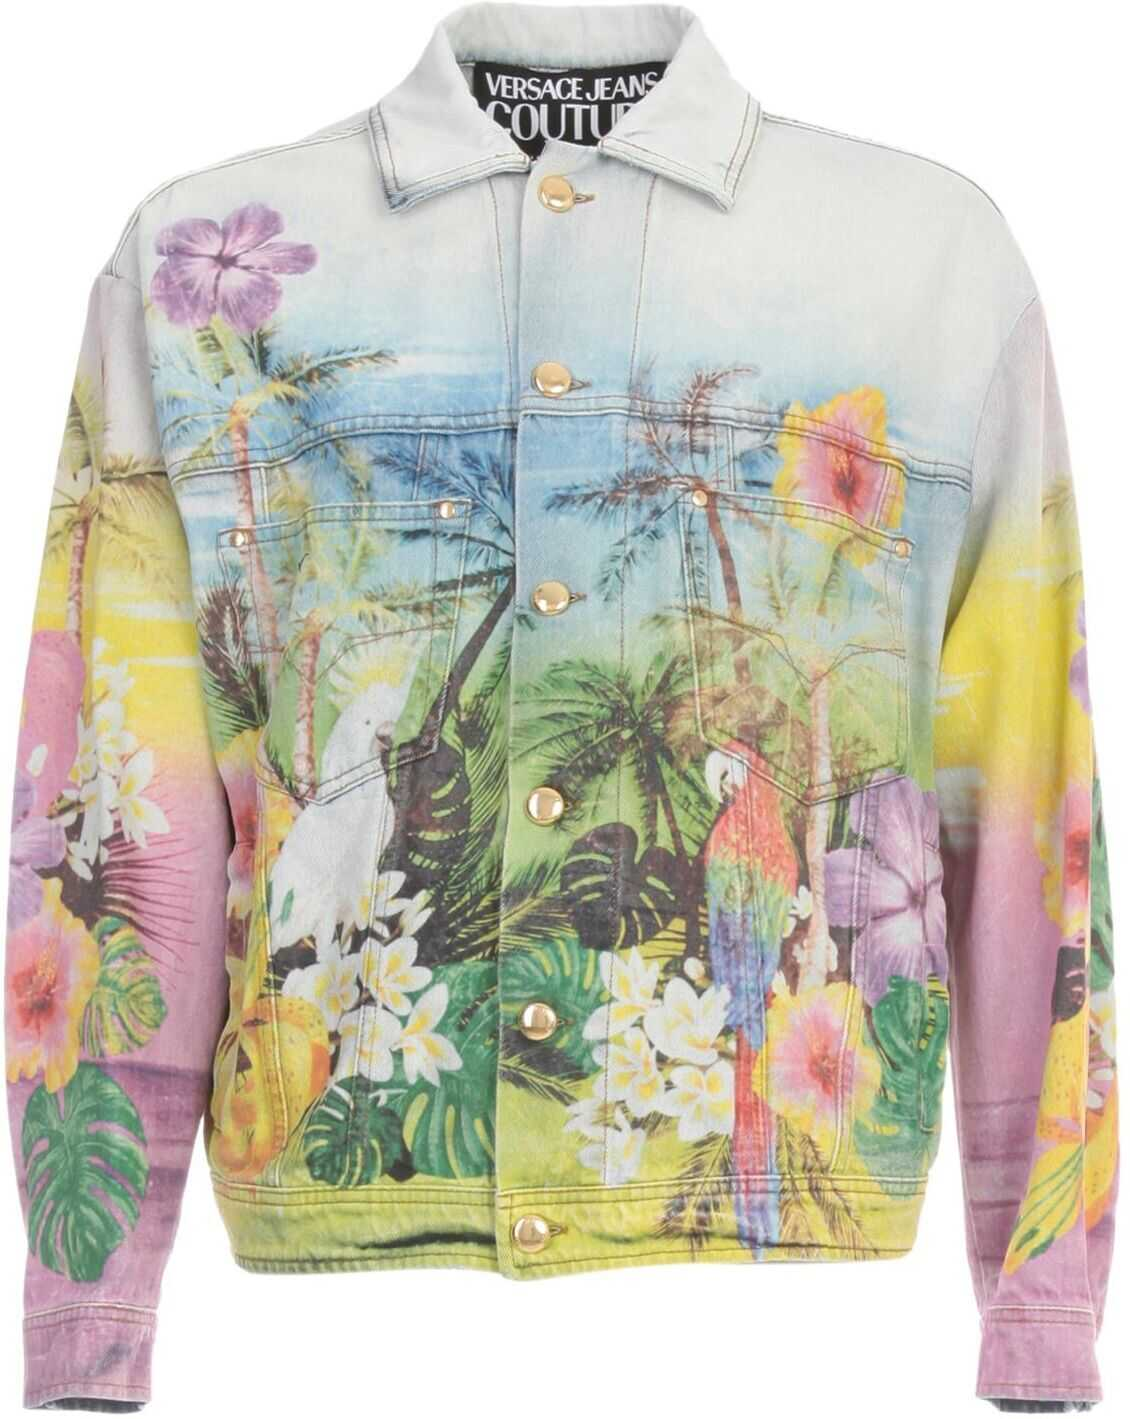 Versace Jeans Cotton Jacket MULTICOLOR